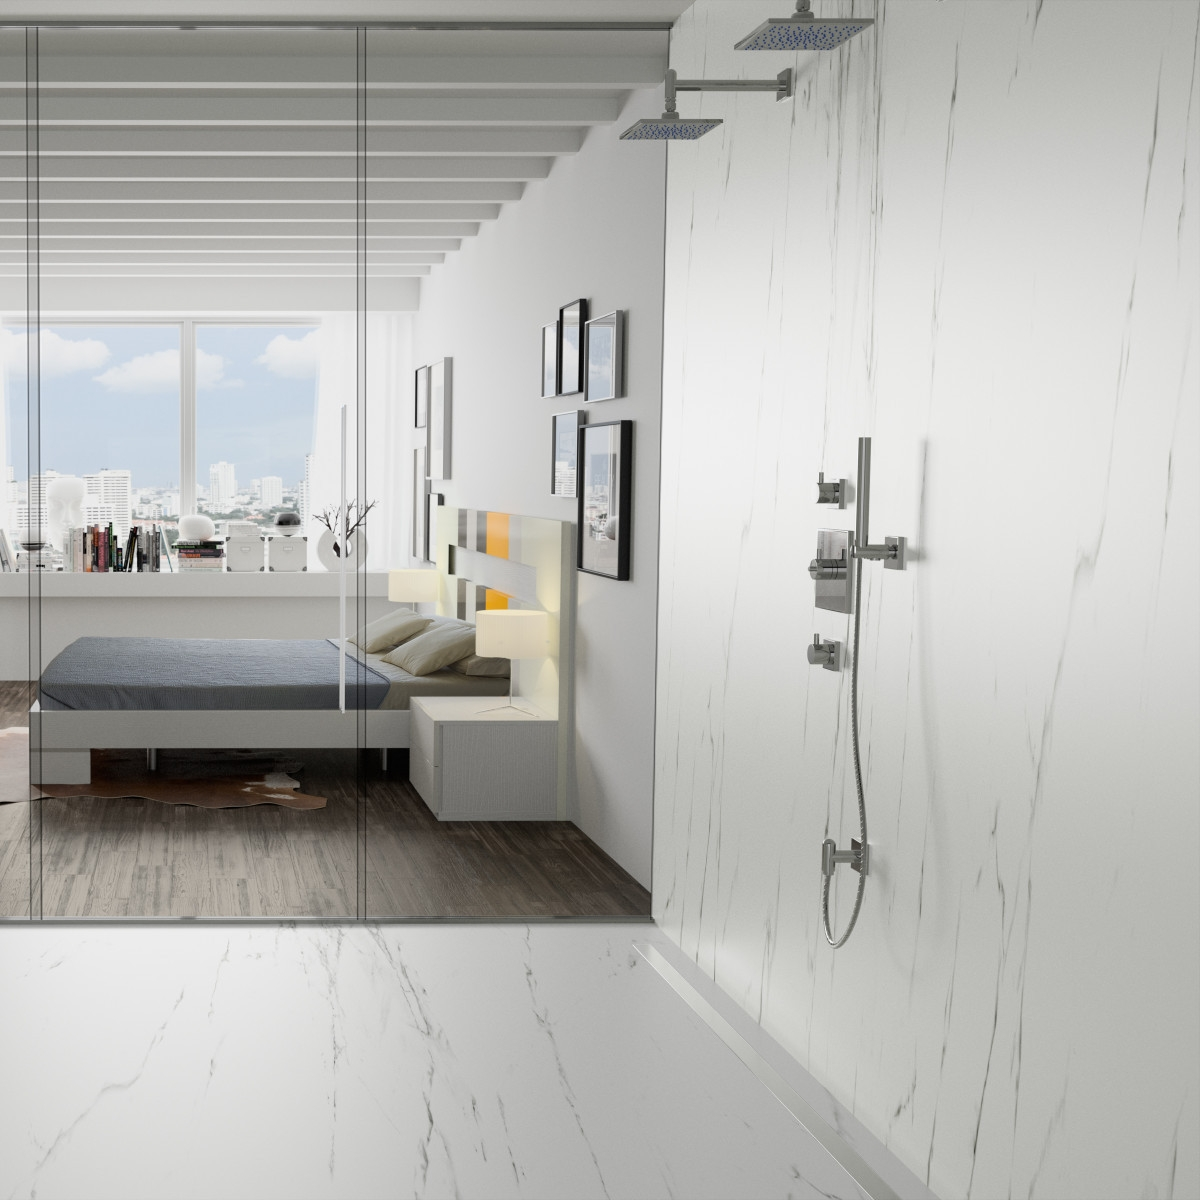 What are thin format porcelain tiles? 71